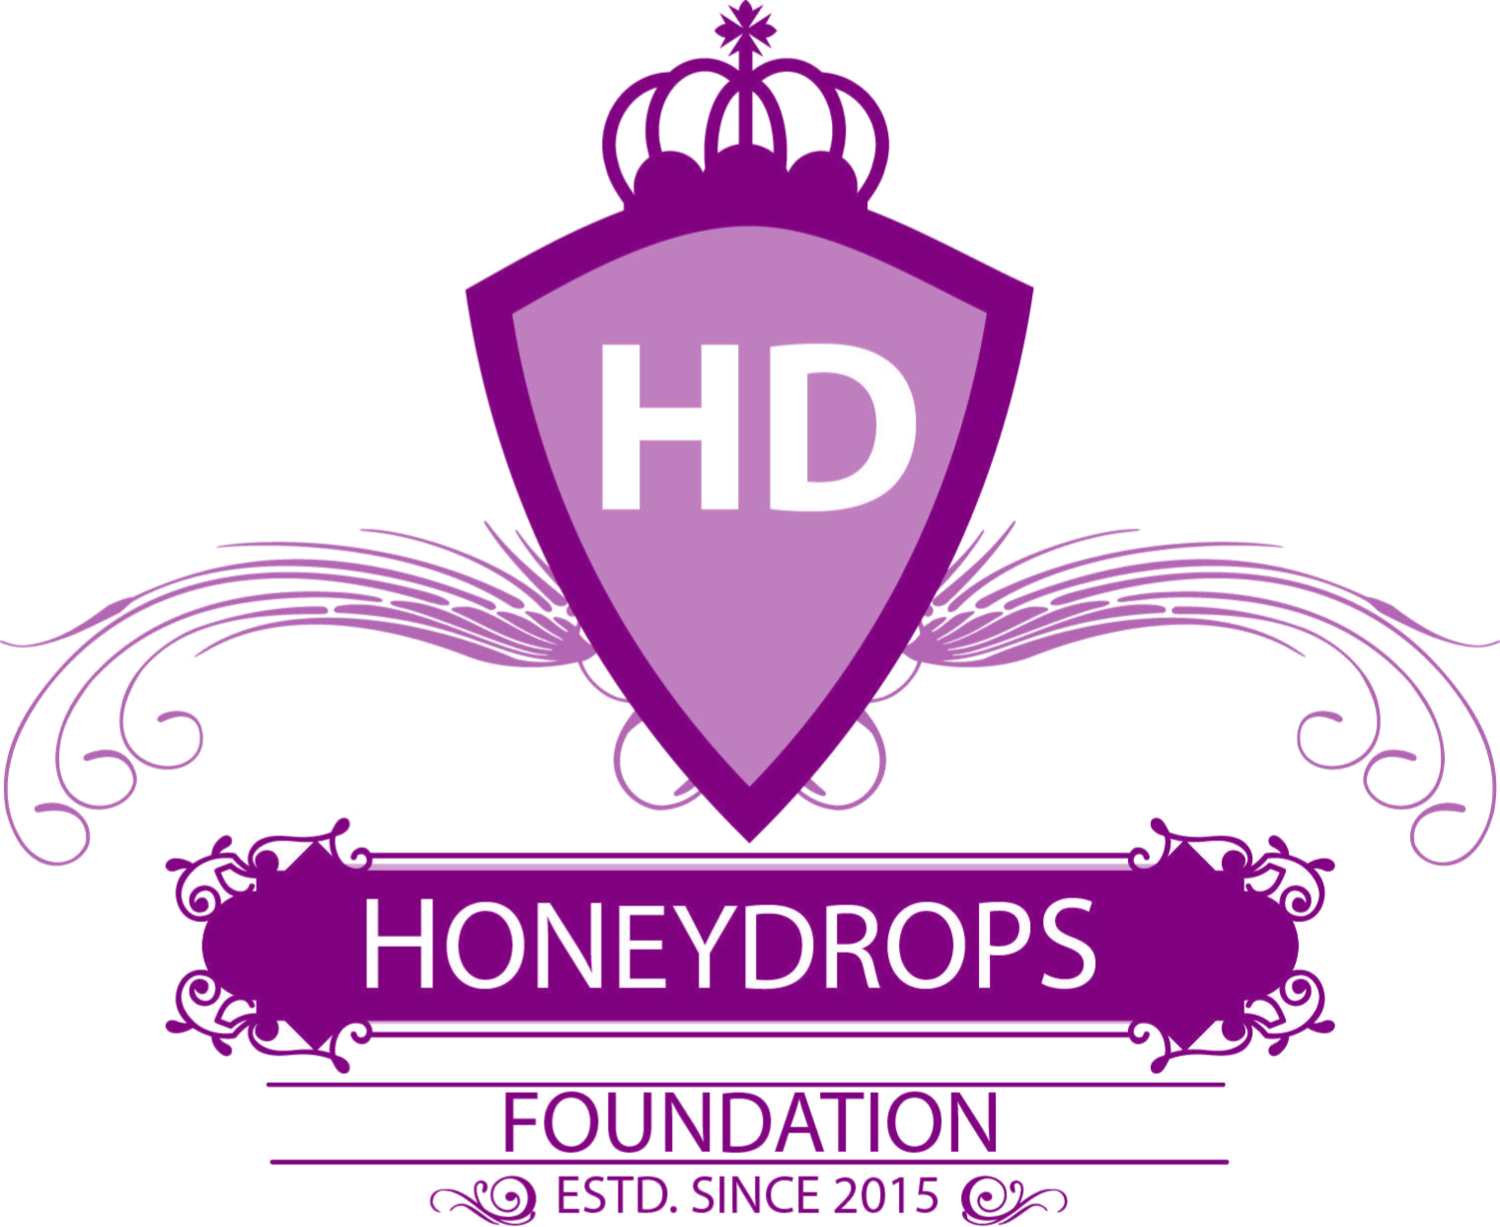 HoneyDrops Foundation